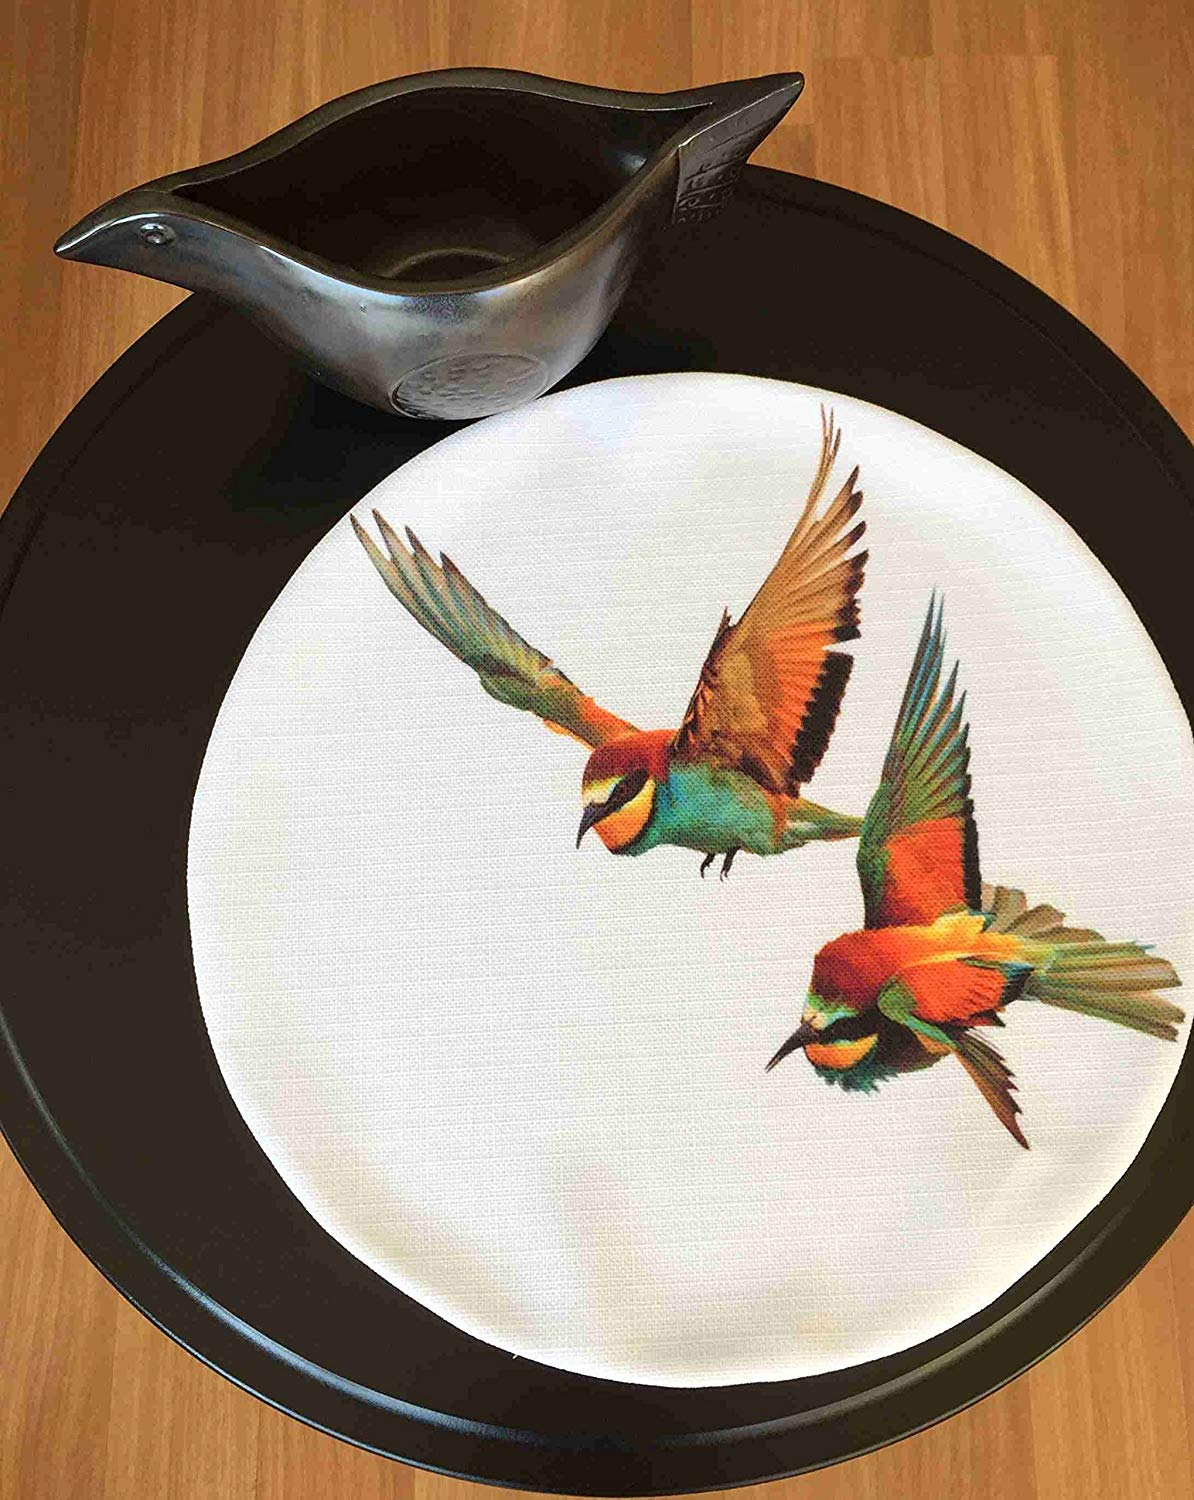 "TekgulDesign Hummingbird Placemats,%100 Polyester, Handmade, Diameter: 35cm (14""), Crease Resistant and Stain-Proof Fabric, Modern and Colorful Ultra HD Graphics."